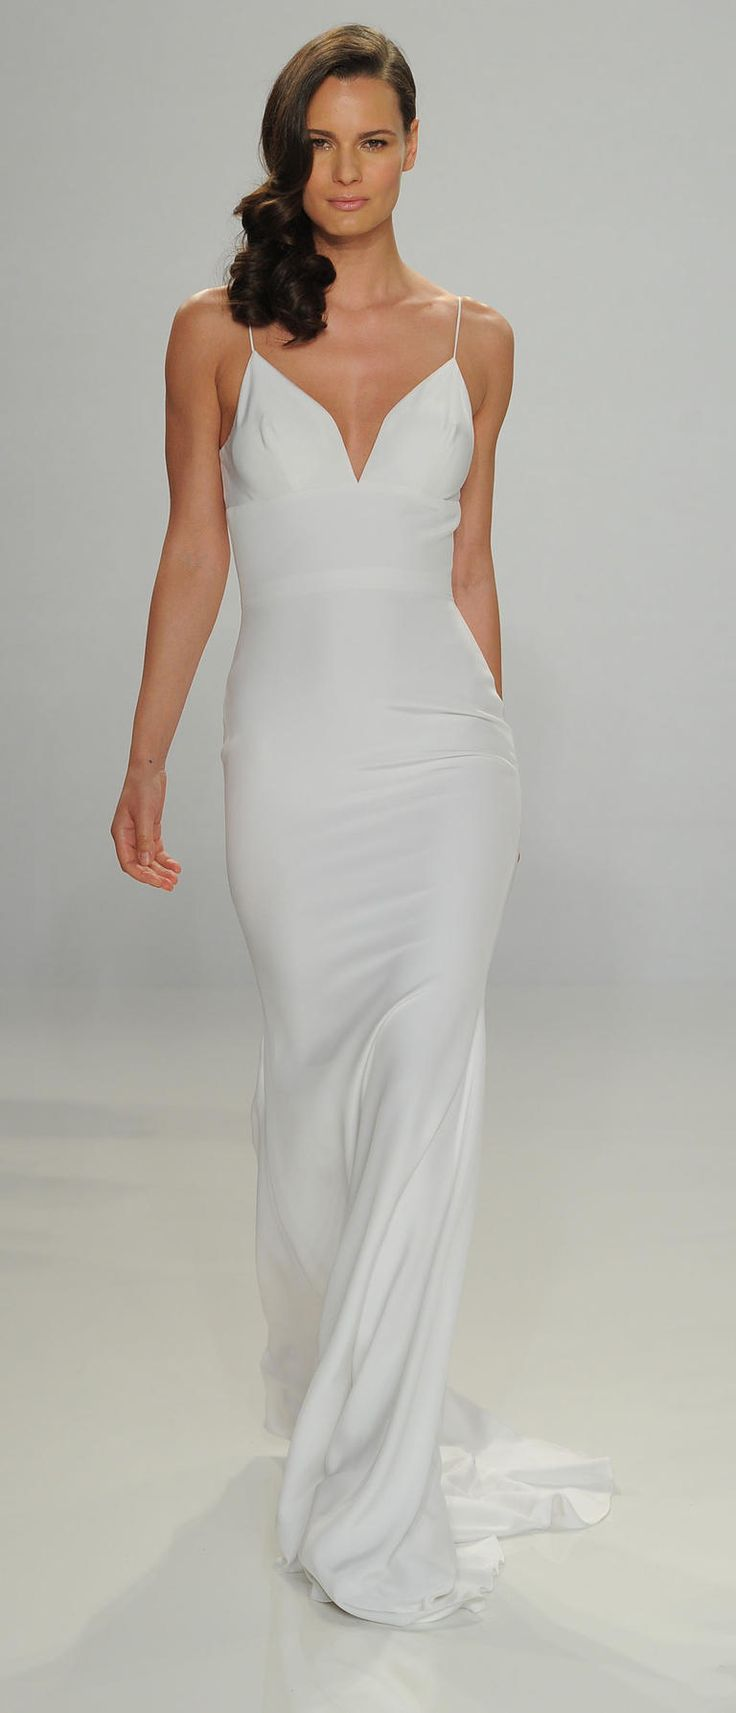 slip wedding dress dress for a wedding Christian Siriano Shows Fanciful French Inspired Wedding Dresses for Spring